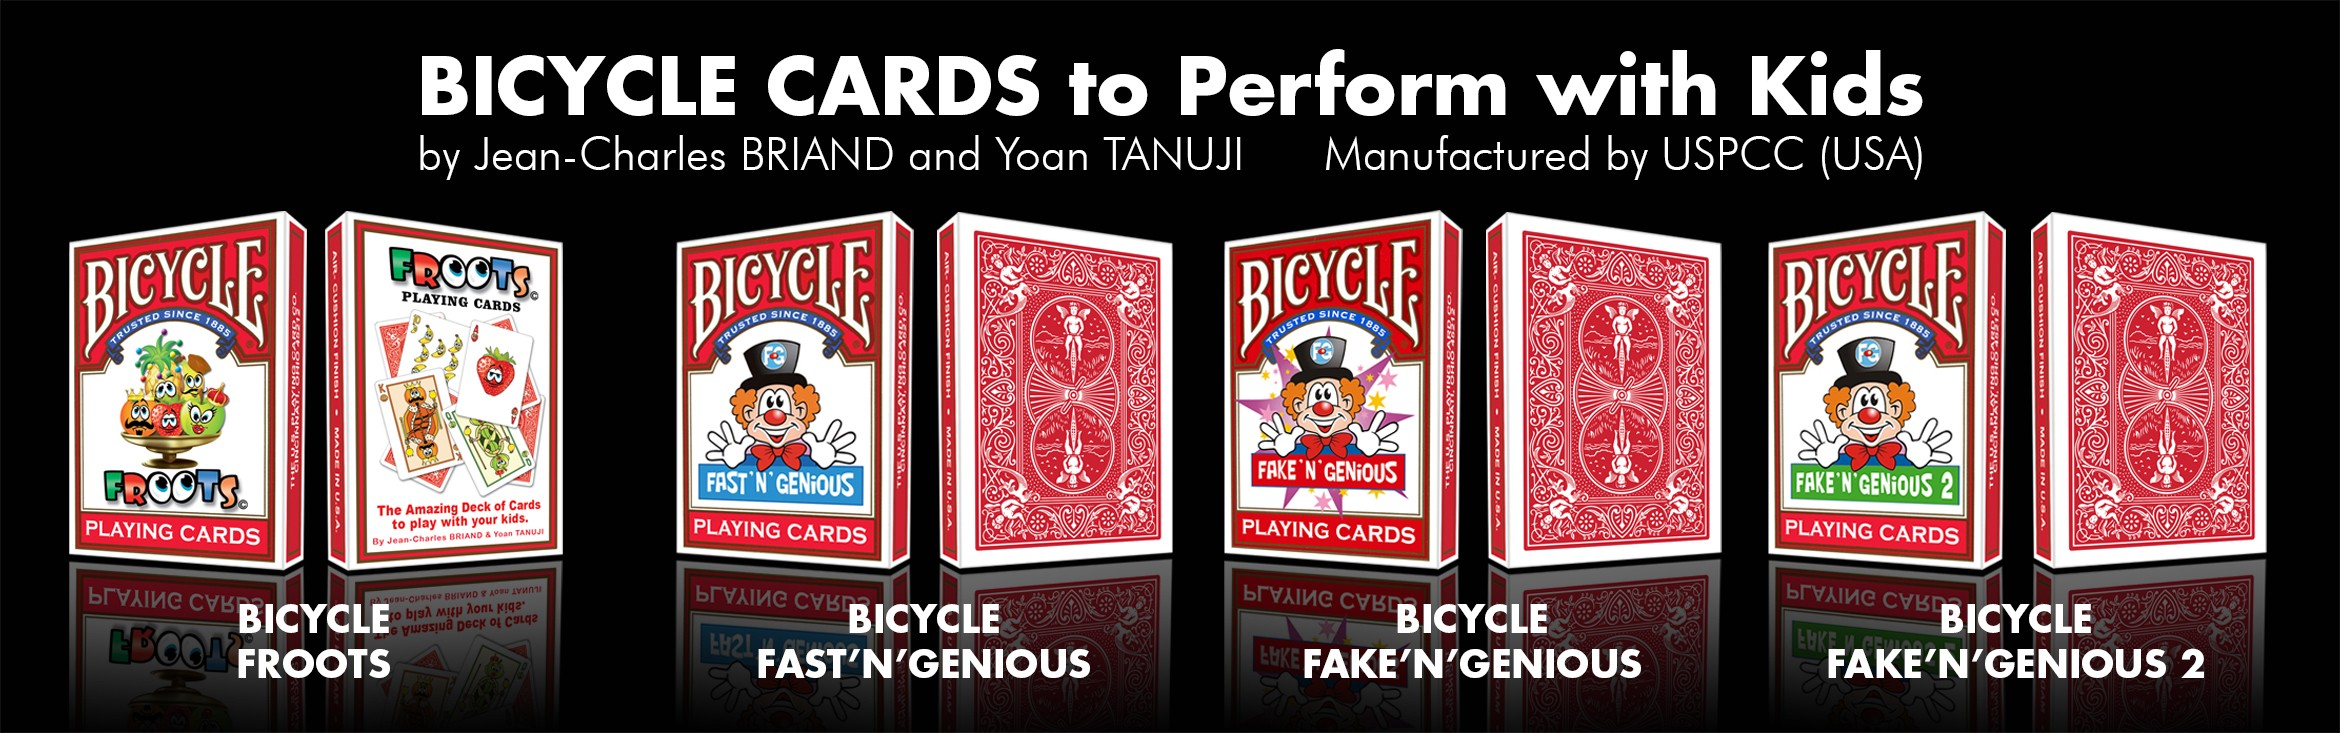 bicycle-cards-magician-kids-children-fast-n-genious-froots-fake-n-genious